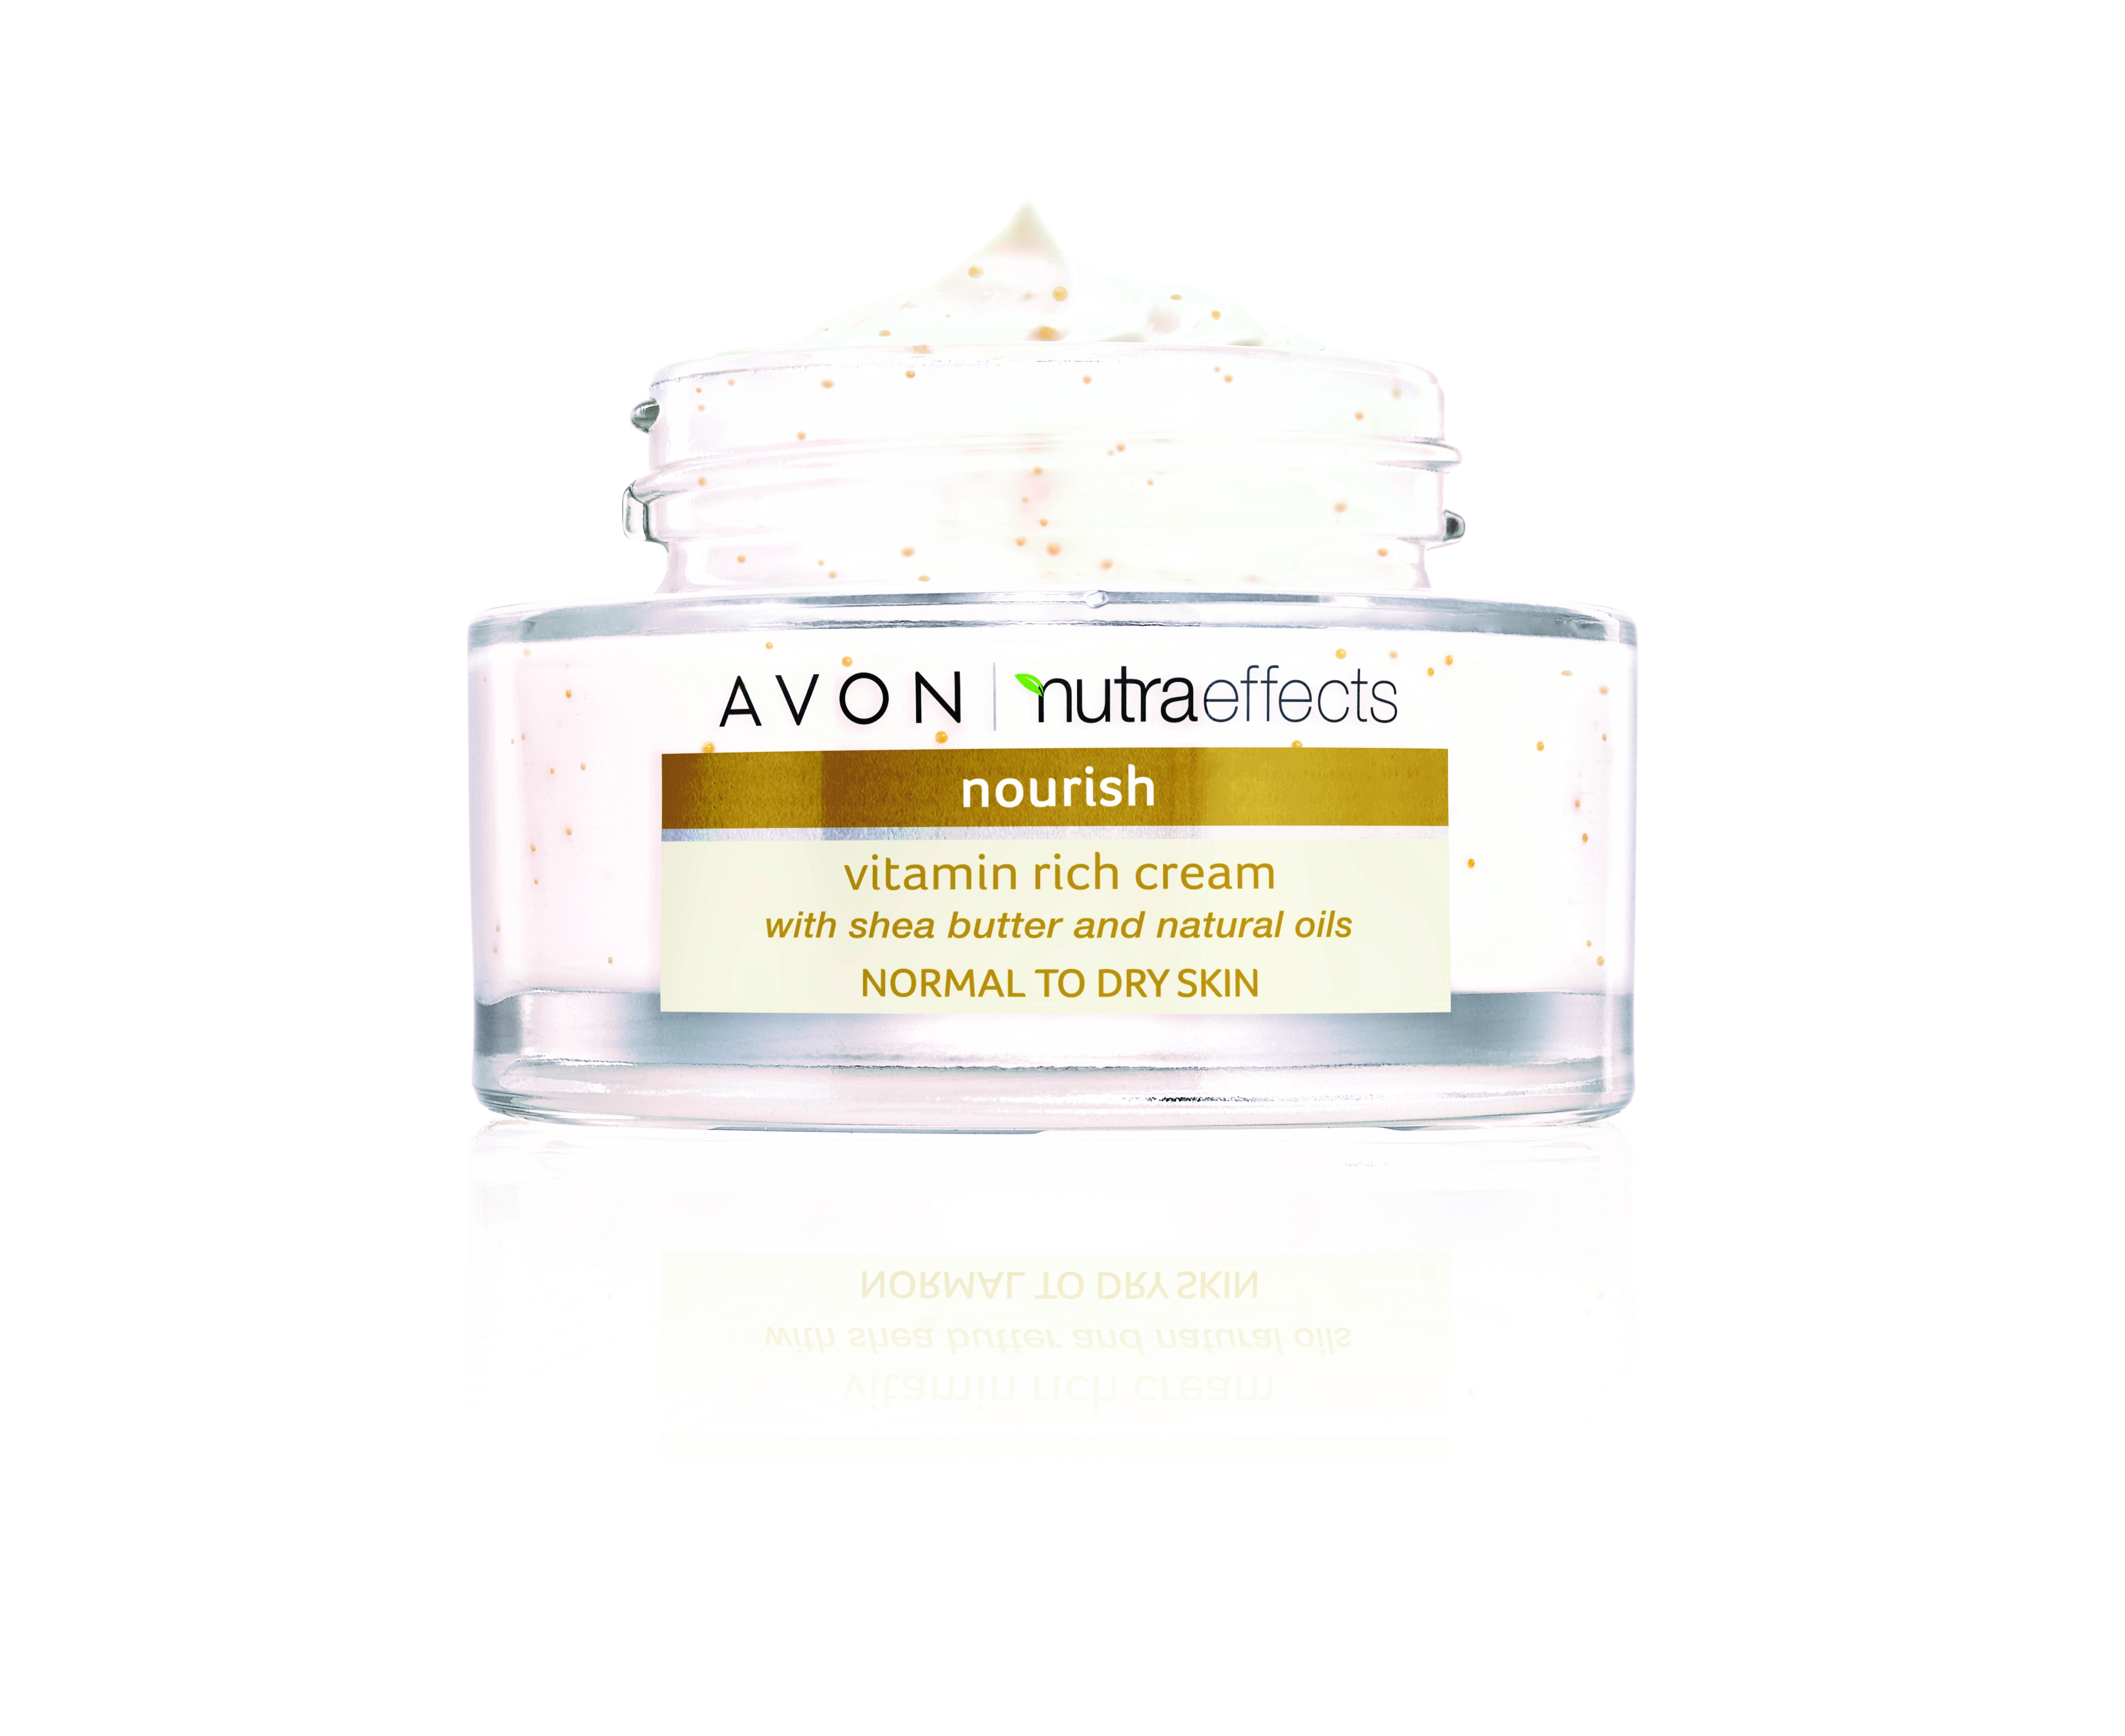 avon_nutra_effects_nourish_vitamindus_krem_2200_ft_1112_2.jpg